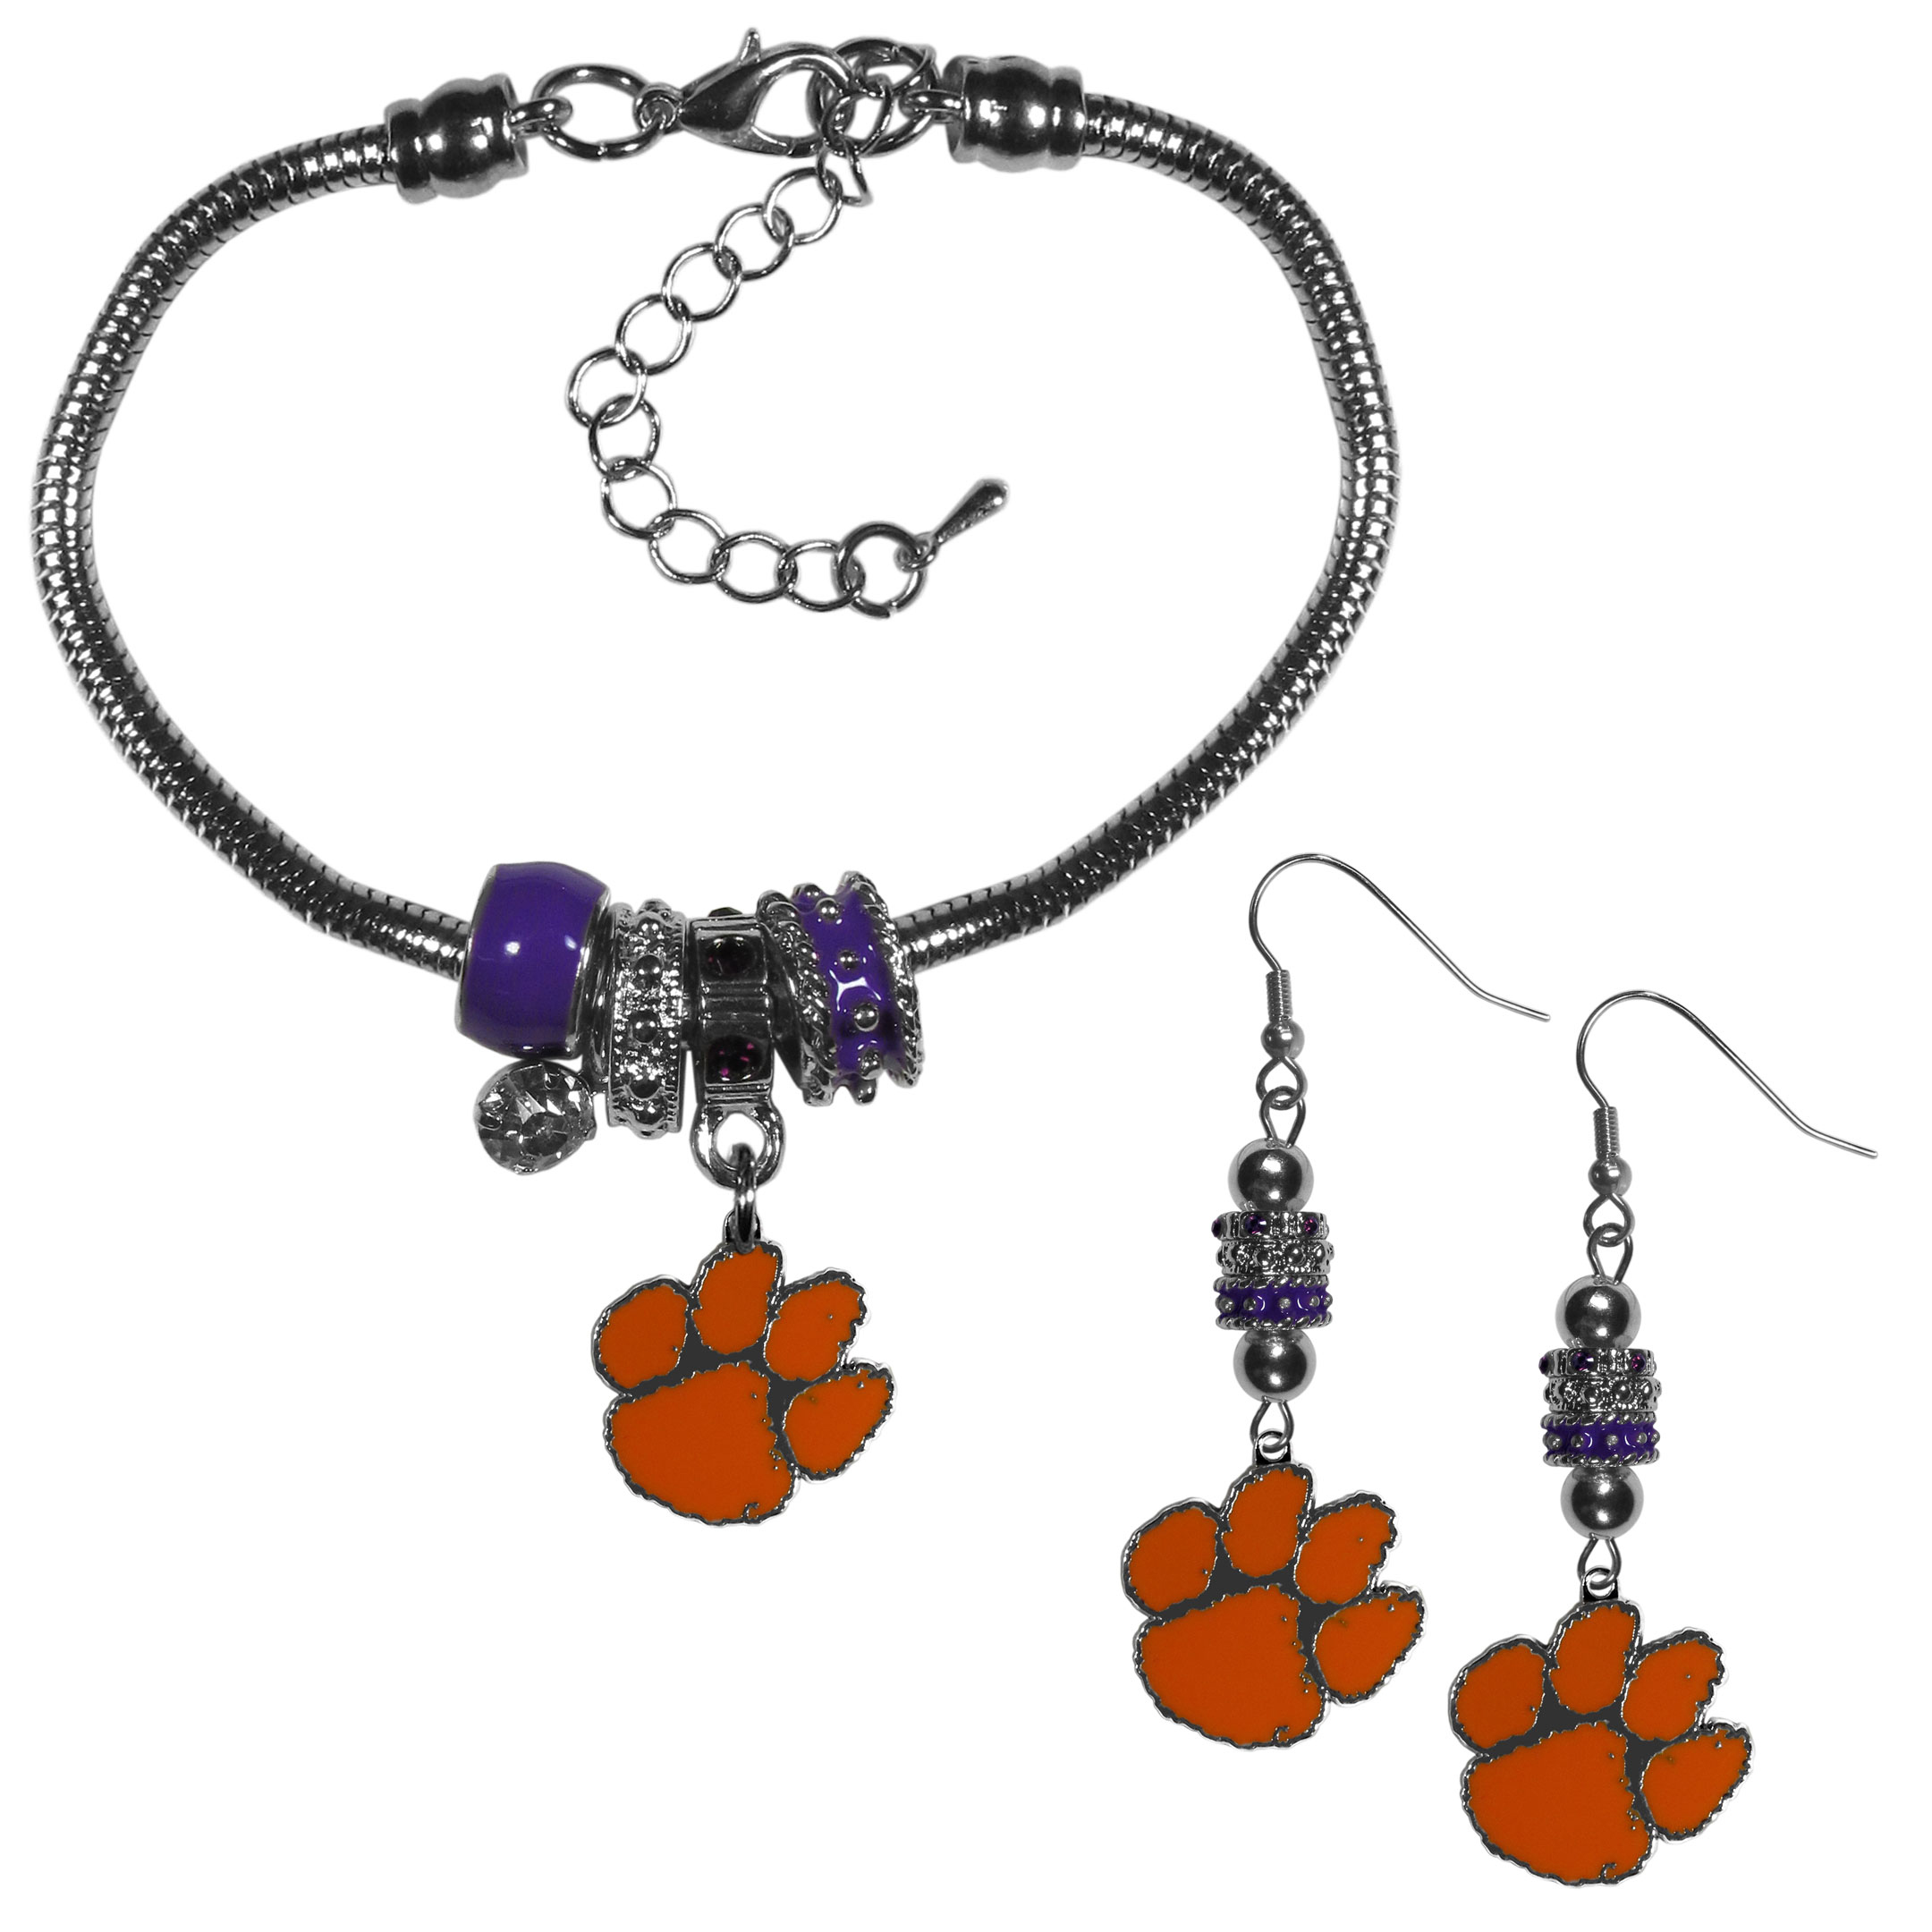 Clemson Tigers Euro Bead Earrings and Bracelet Set - We combine the popular Euro bead style with your love of the Clemson Tigers with this beautiful jewelry set that includes earrings and a matching bracelet. The stylish earrings feature hypoallergenic, nickel free fishhook posts and 3 team colored Euro beads and a metal team charm. The matching snake chain bracelet is 7.5 inches long with a 2 inch extender and 4 Euro beads with a rhinestone charm and team charm.